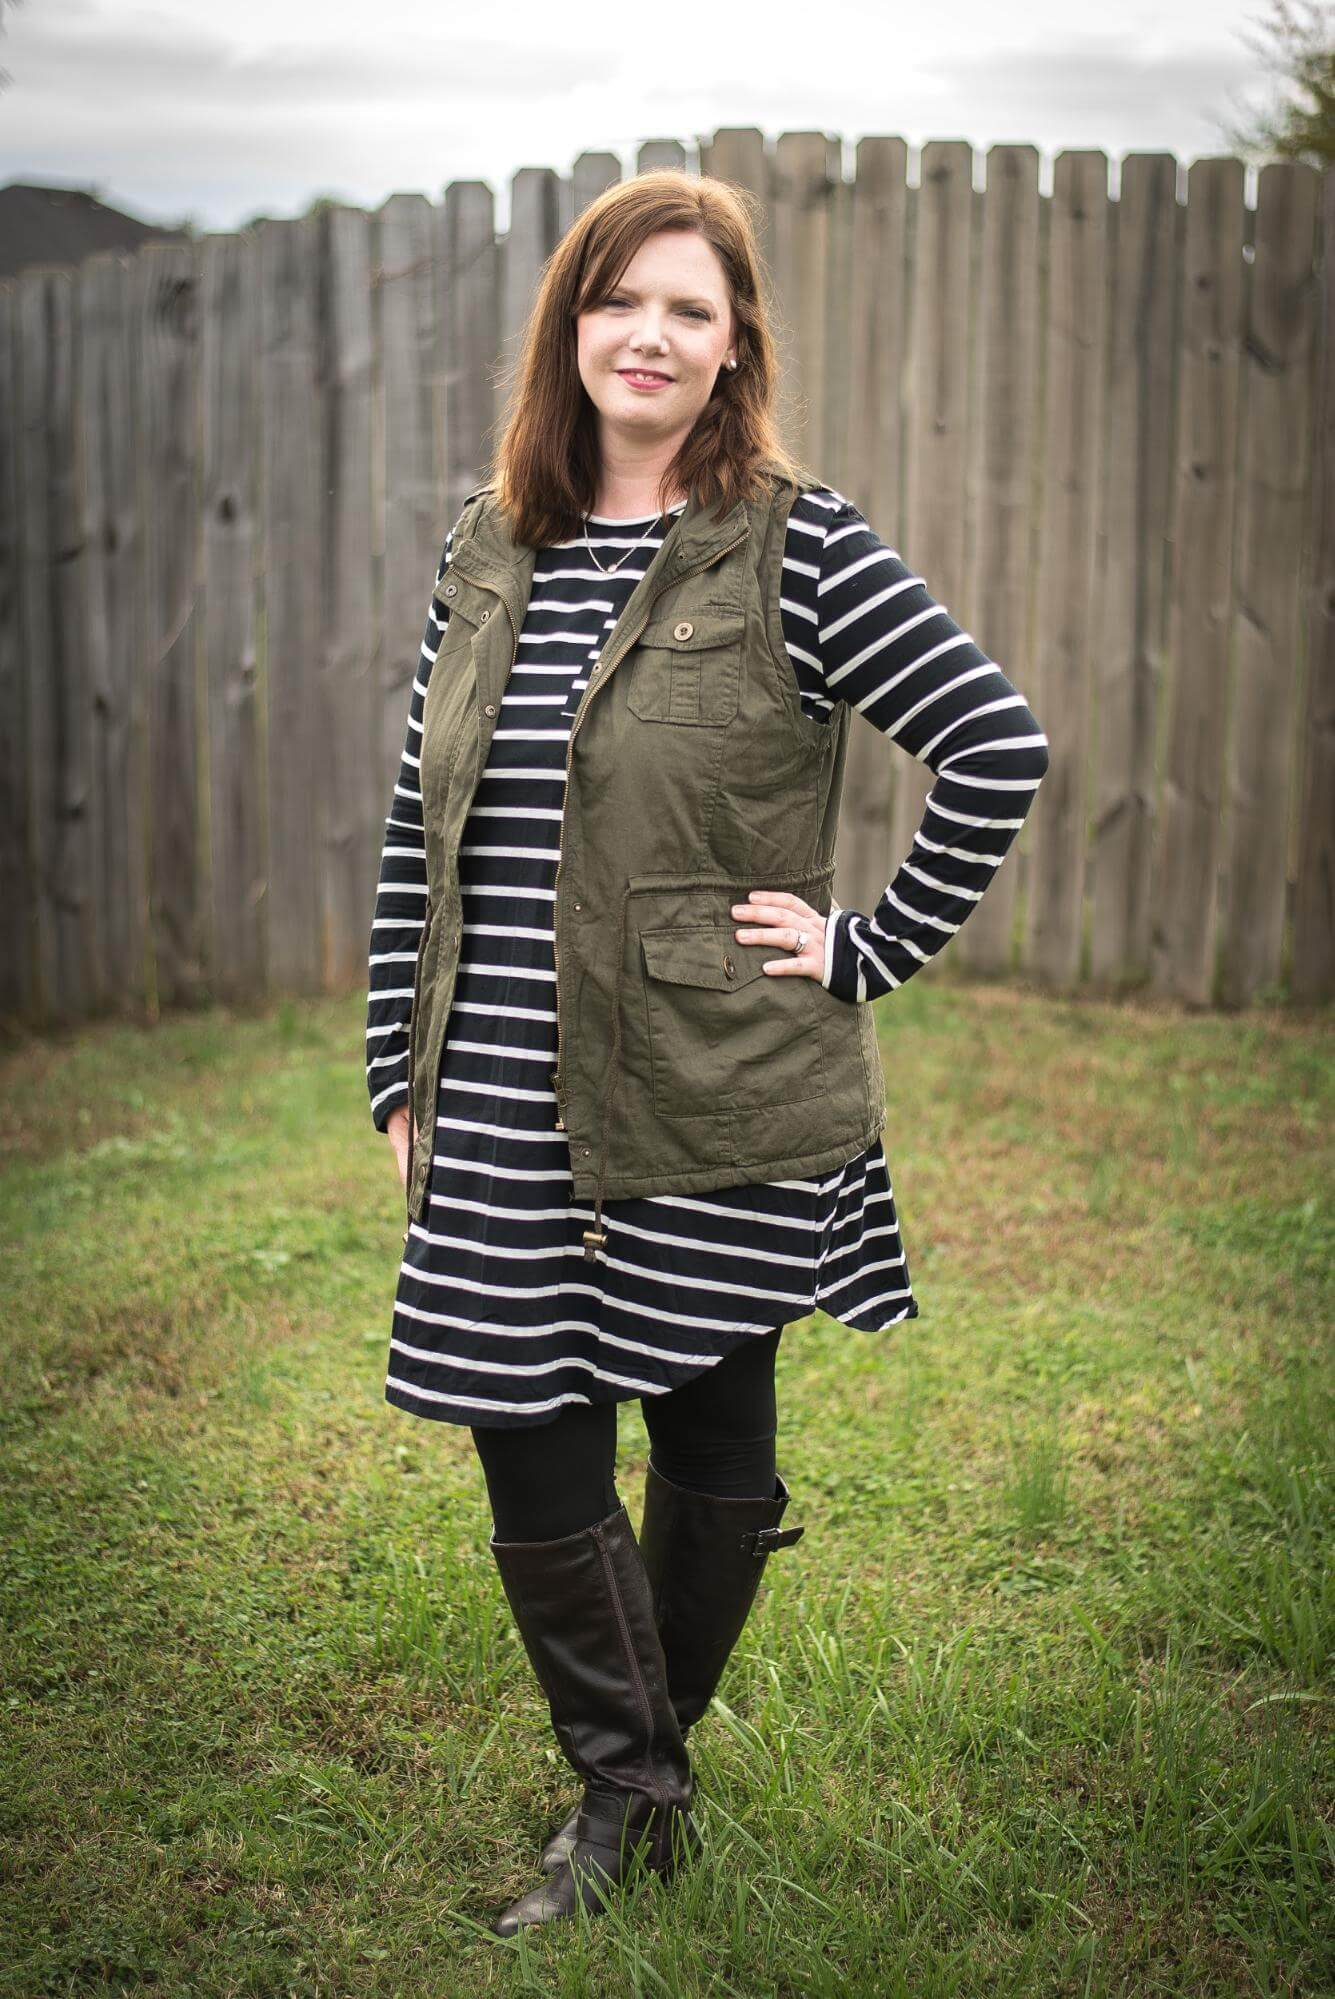 Stripe swing dress + utility vest + leggings + boots... simple but comfy mom outfit! Comfy but stylish mom outfit ideas for fall. These outfits are fashionable but not too trendy! They are all created from a wardrobe capsule-like plan for moms created by the blog. Such a helpful guide for not looking frumpy! And I love the guest blogger's boutique... cute stuff that is actually affordable! Shows you how to style a simple black dress, leopard scarf, denim jacket, striped swing dress, utility vest